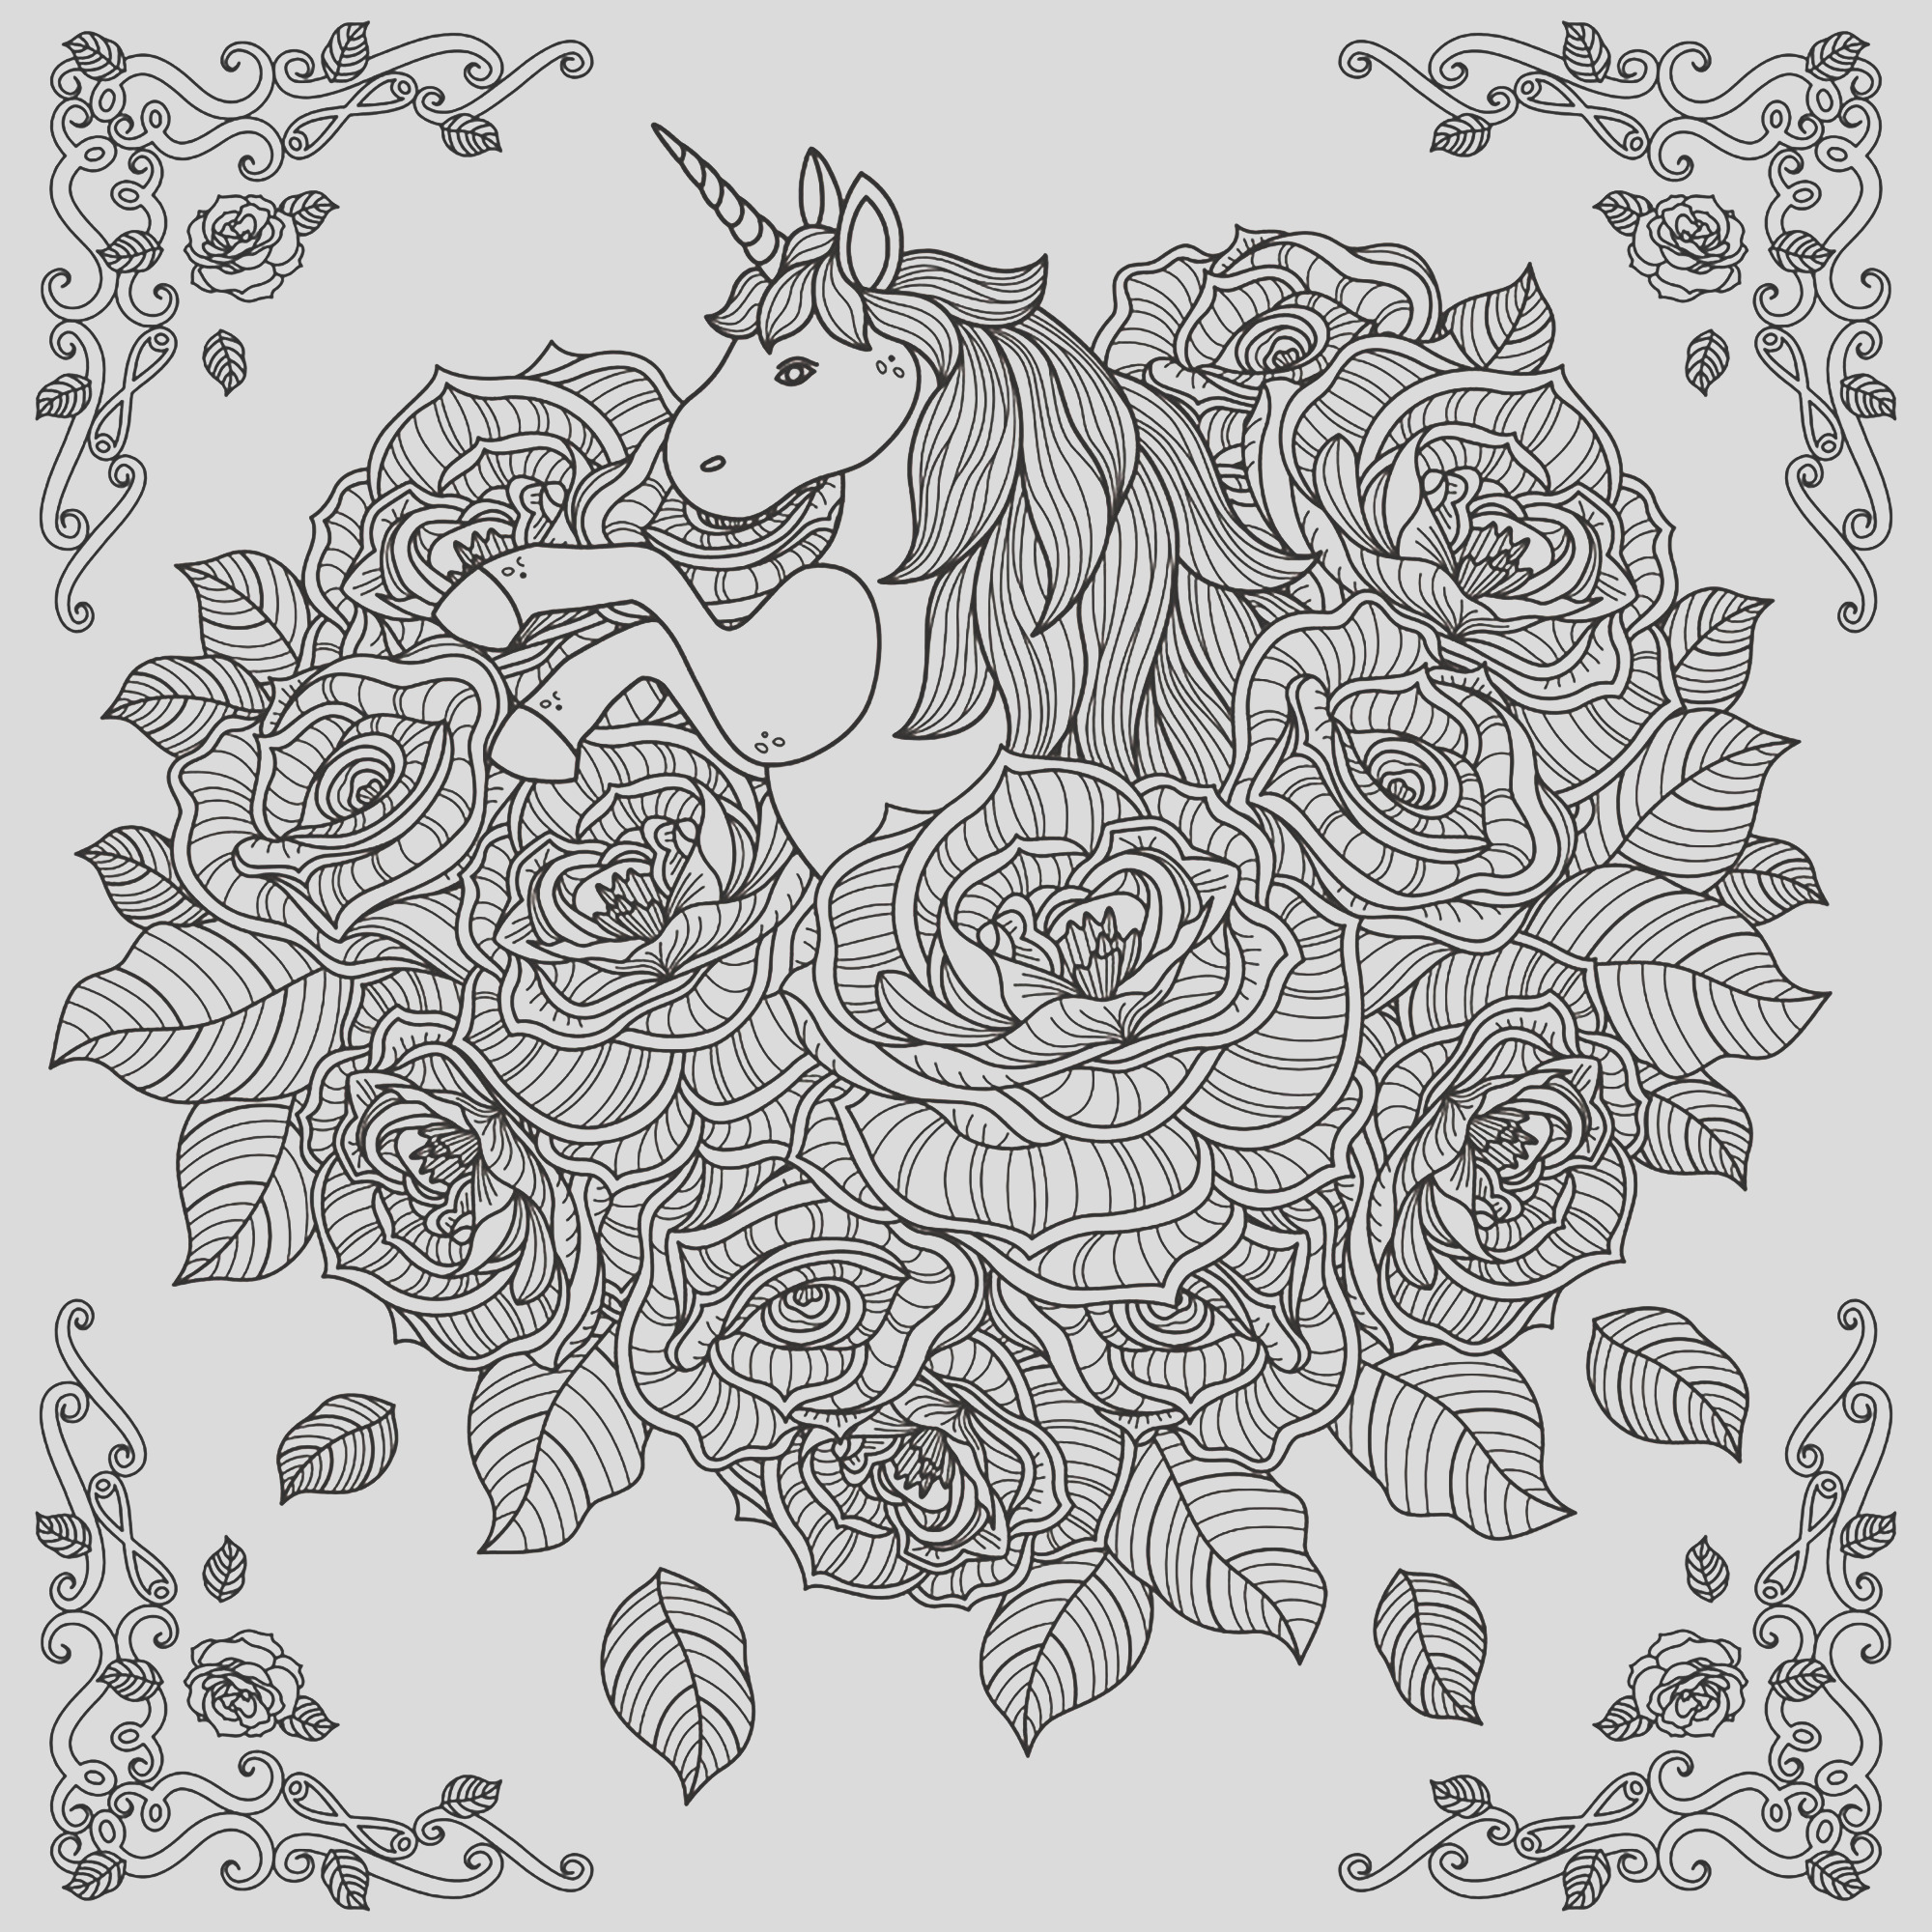 image=unicorns coloring pages adults unicorn mandala by kchung 1